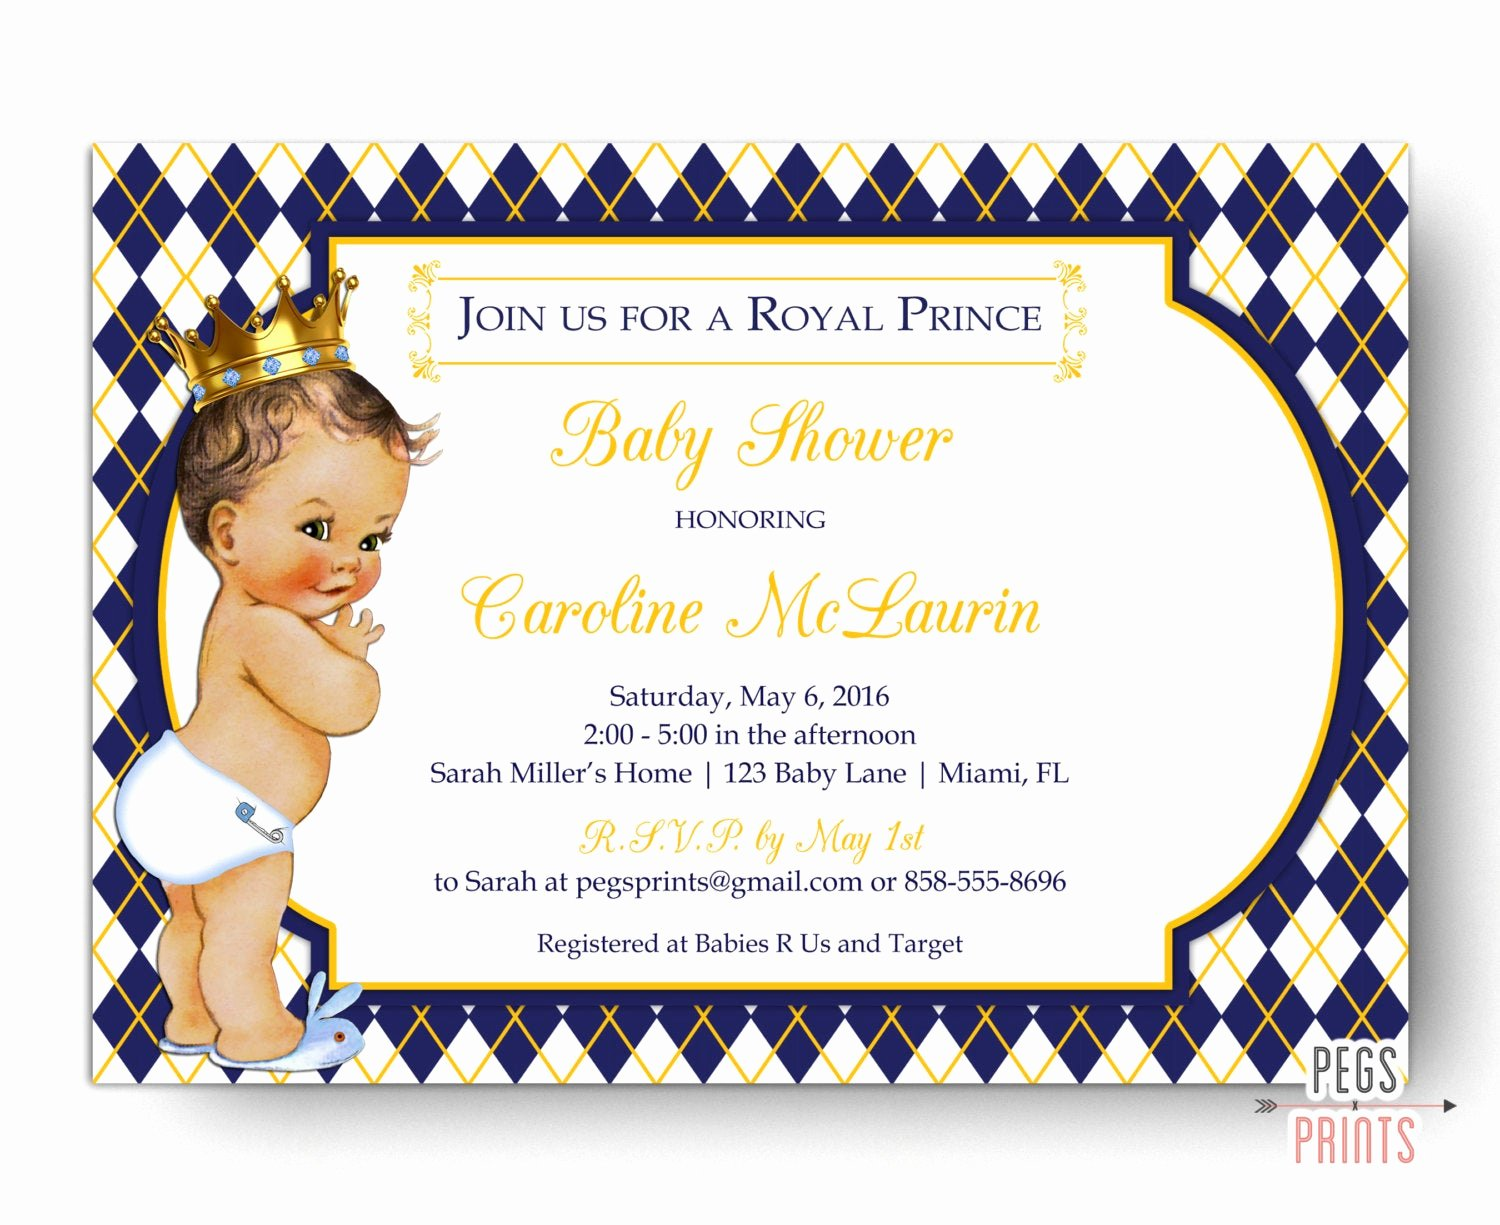 Royal Baby Shower Invitations Fresh Royal Prince Baby Shower Invitation Royal Baby Shower